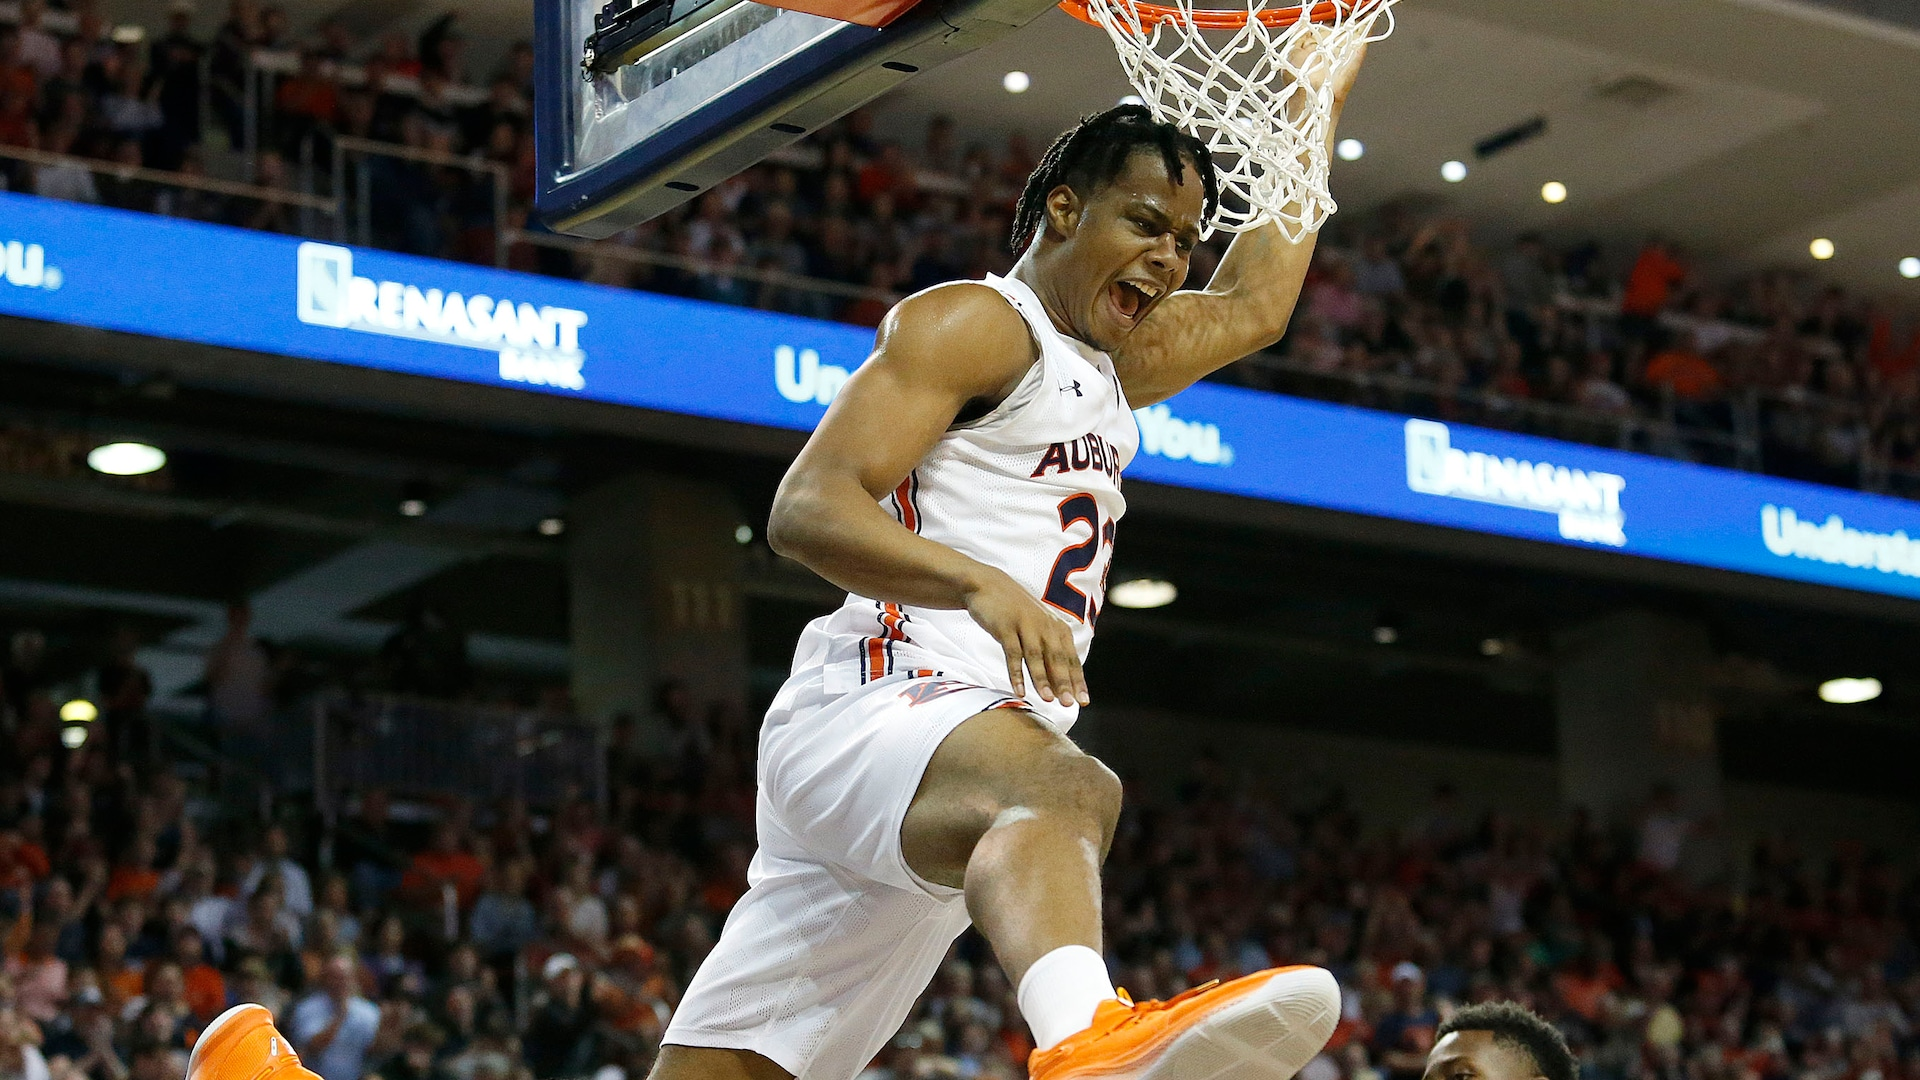 Auburn forward Isaac Okoro not about to back down from challenge of NBA